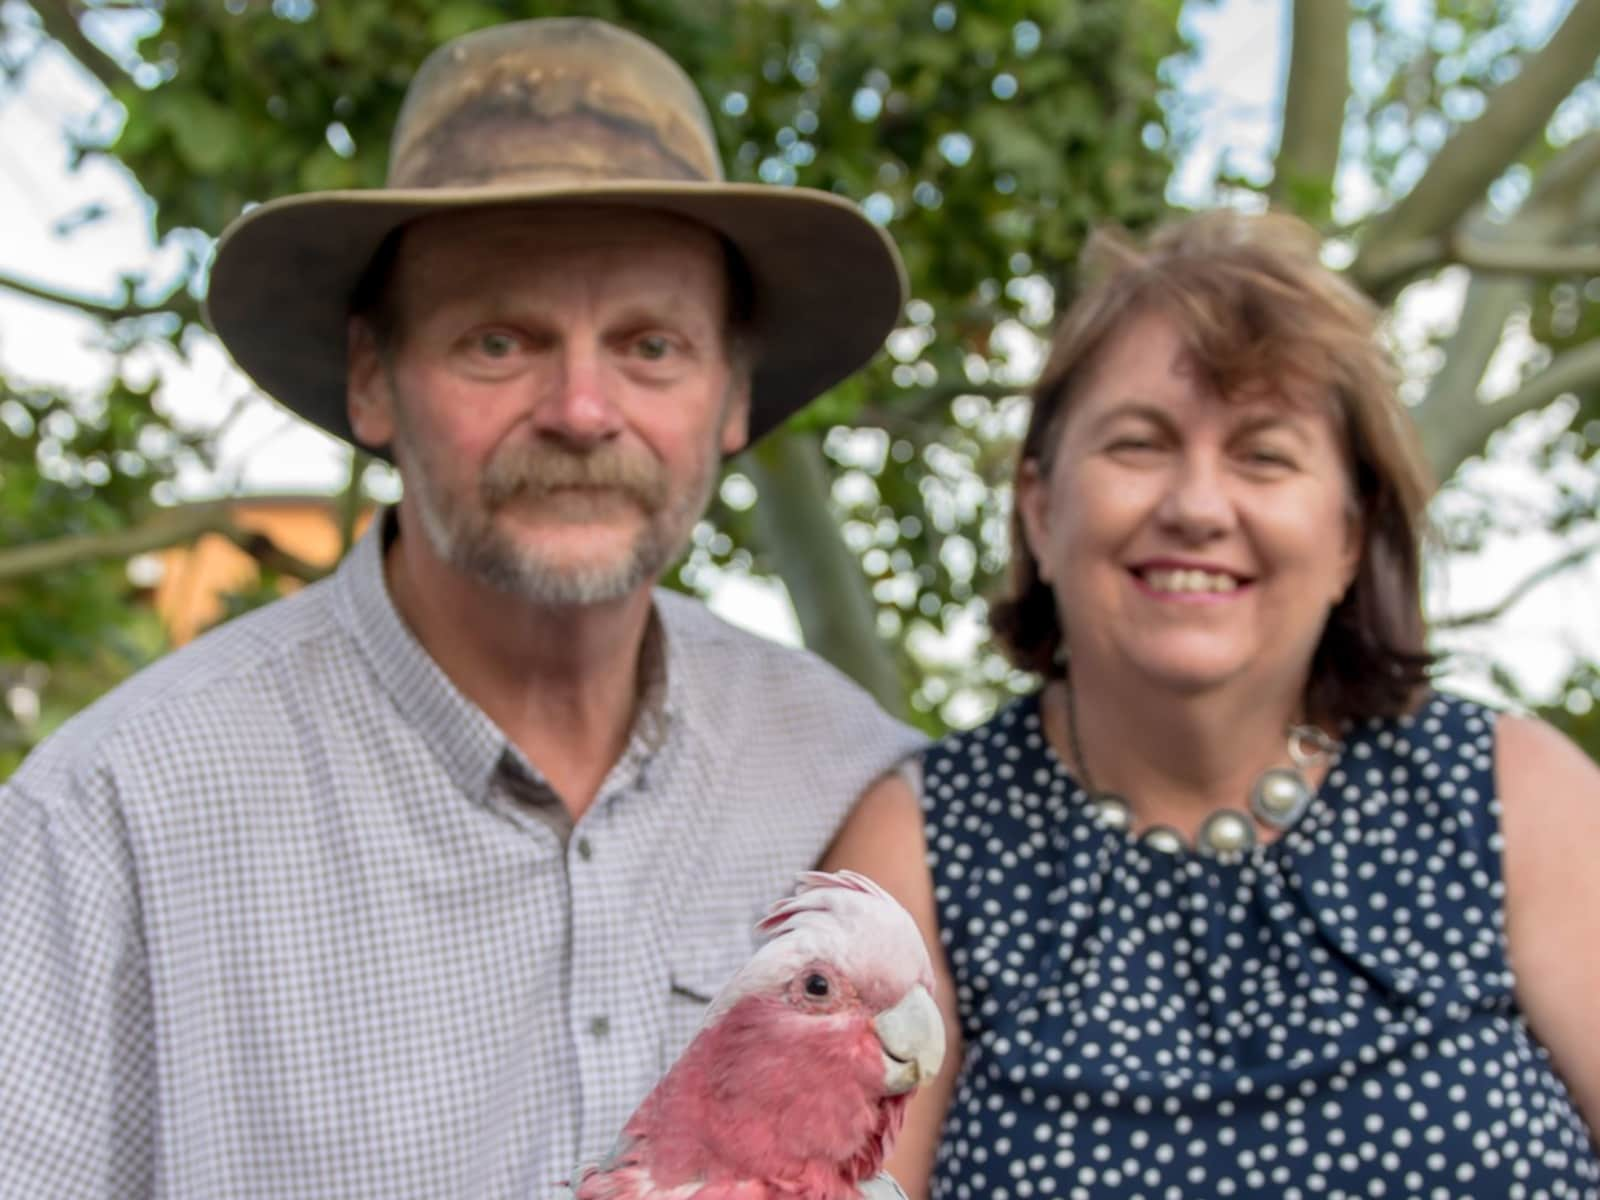 Peter & Susan from Gladstone, Queensland, Australia